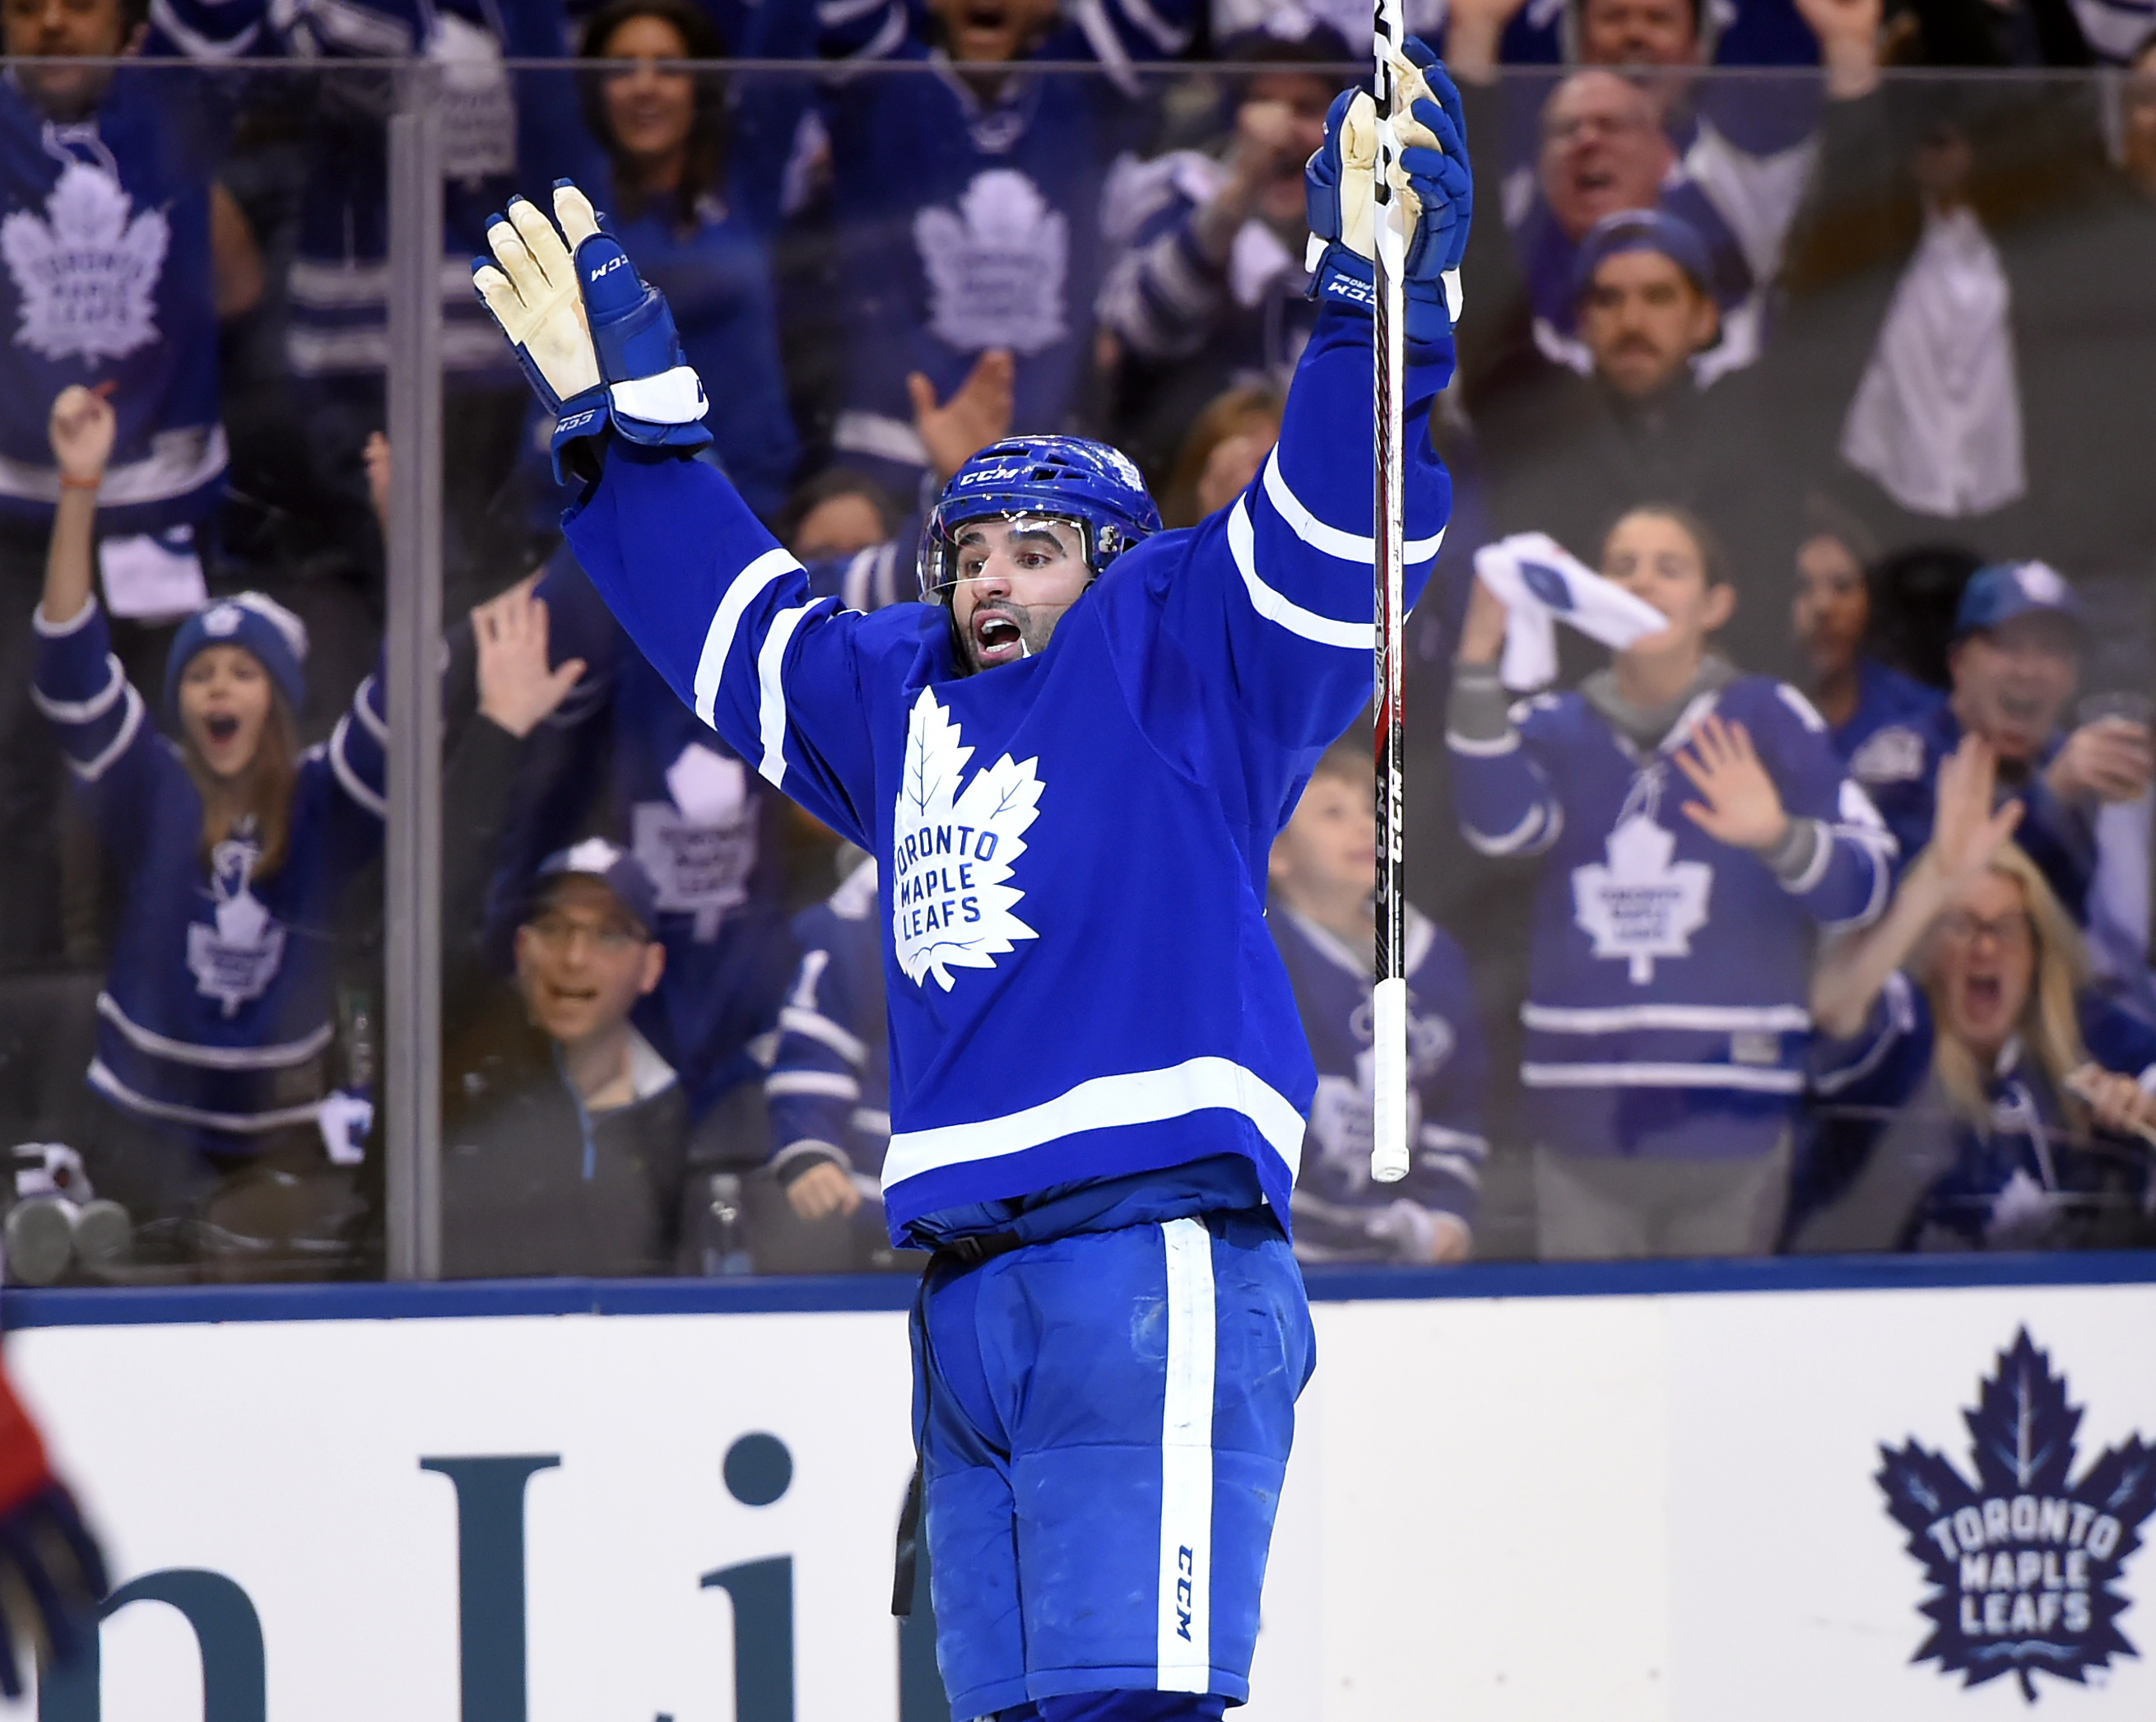 10017597-nhl-stanley-cup-playoffs-washington-capitals-at-toronto-maple-leafs-1